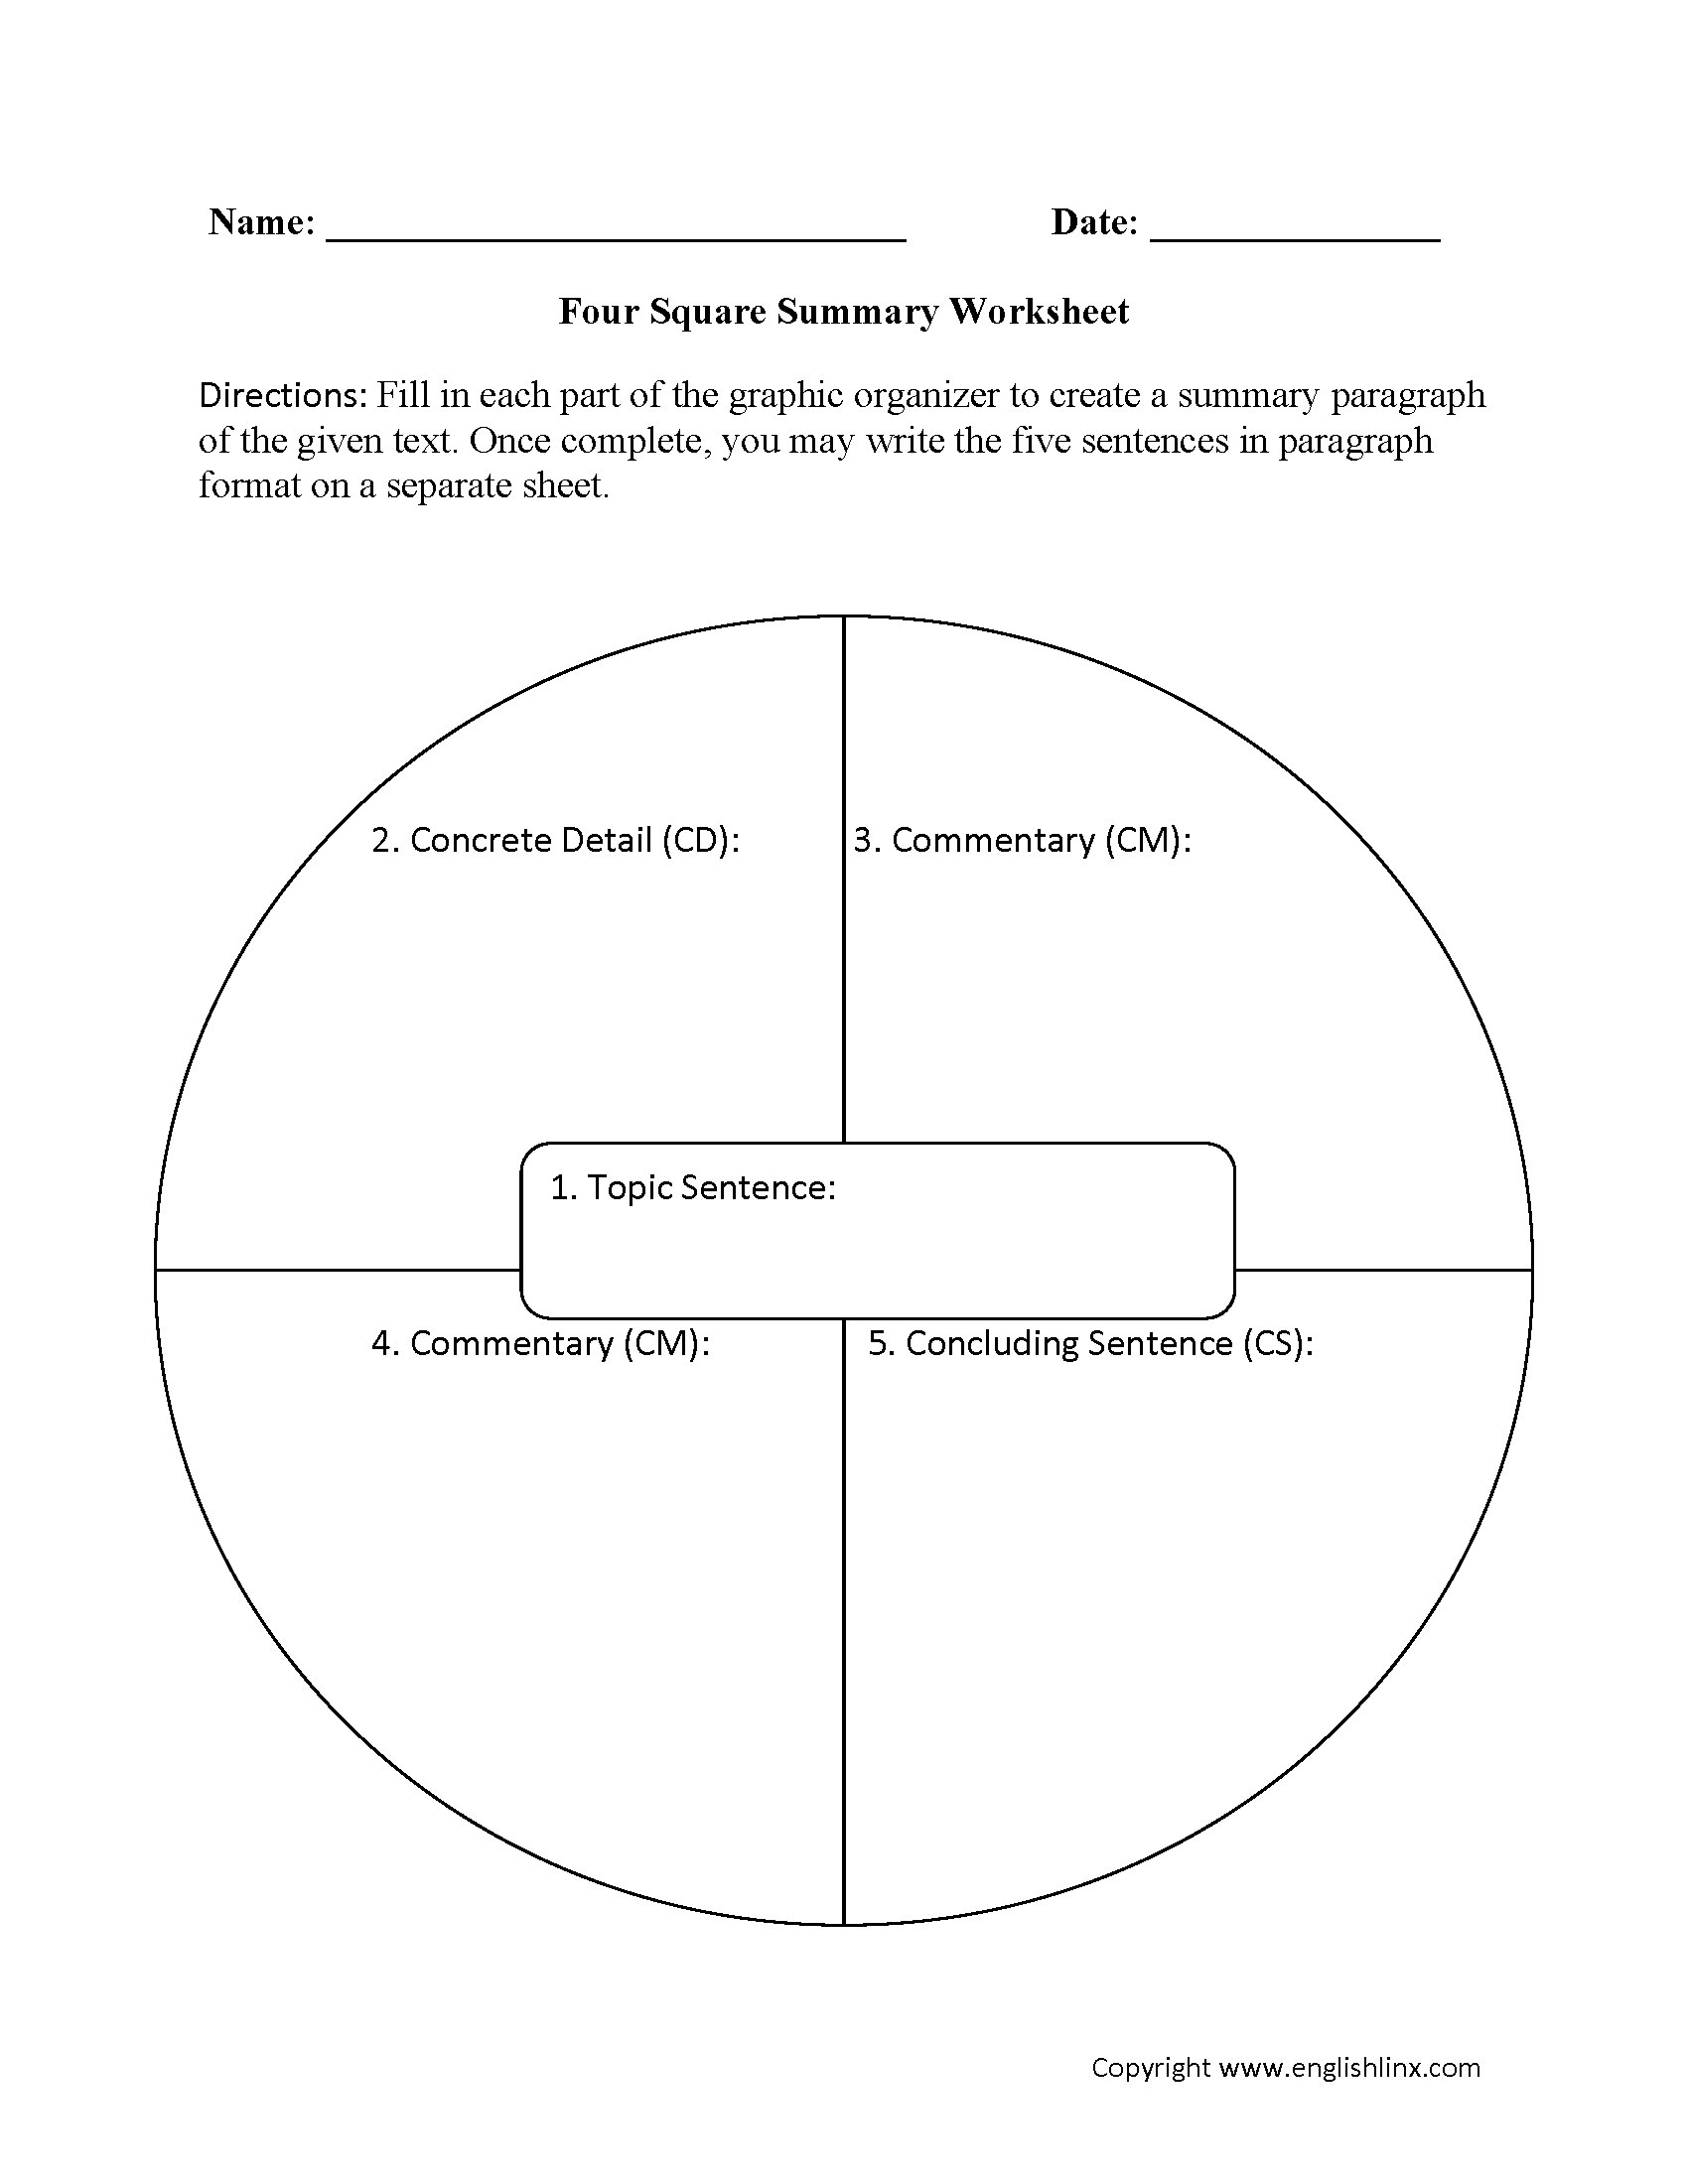 Summary Worksheets – Four Square Worksheet